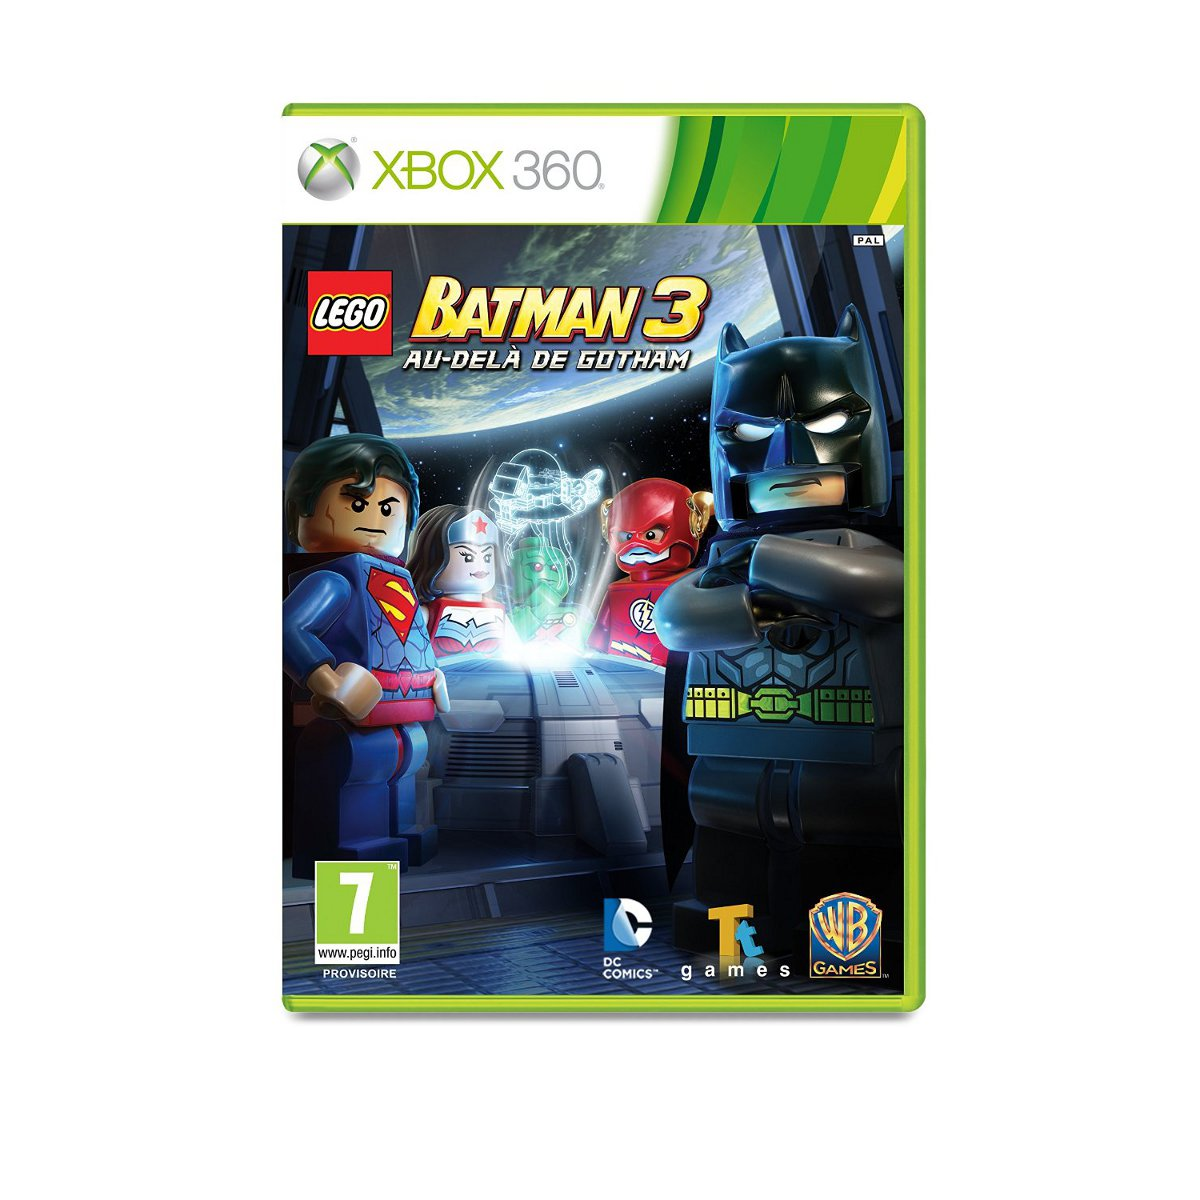 lego batman 3 au d l de gotham xbox 360 jeux xbox 360 warner bros games sur. Black Bedroom Furniture Sets. Home Design Ideas